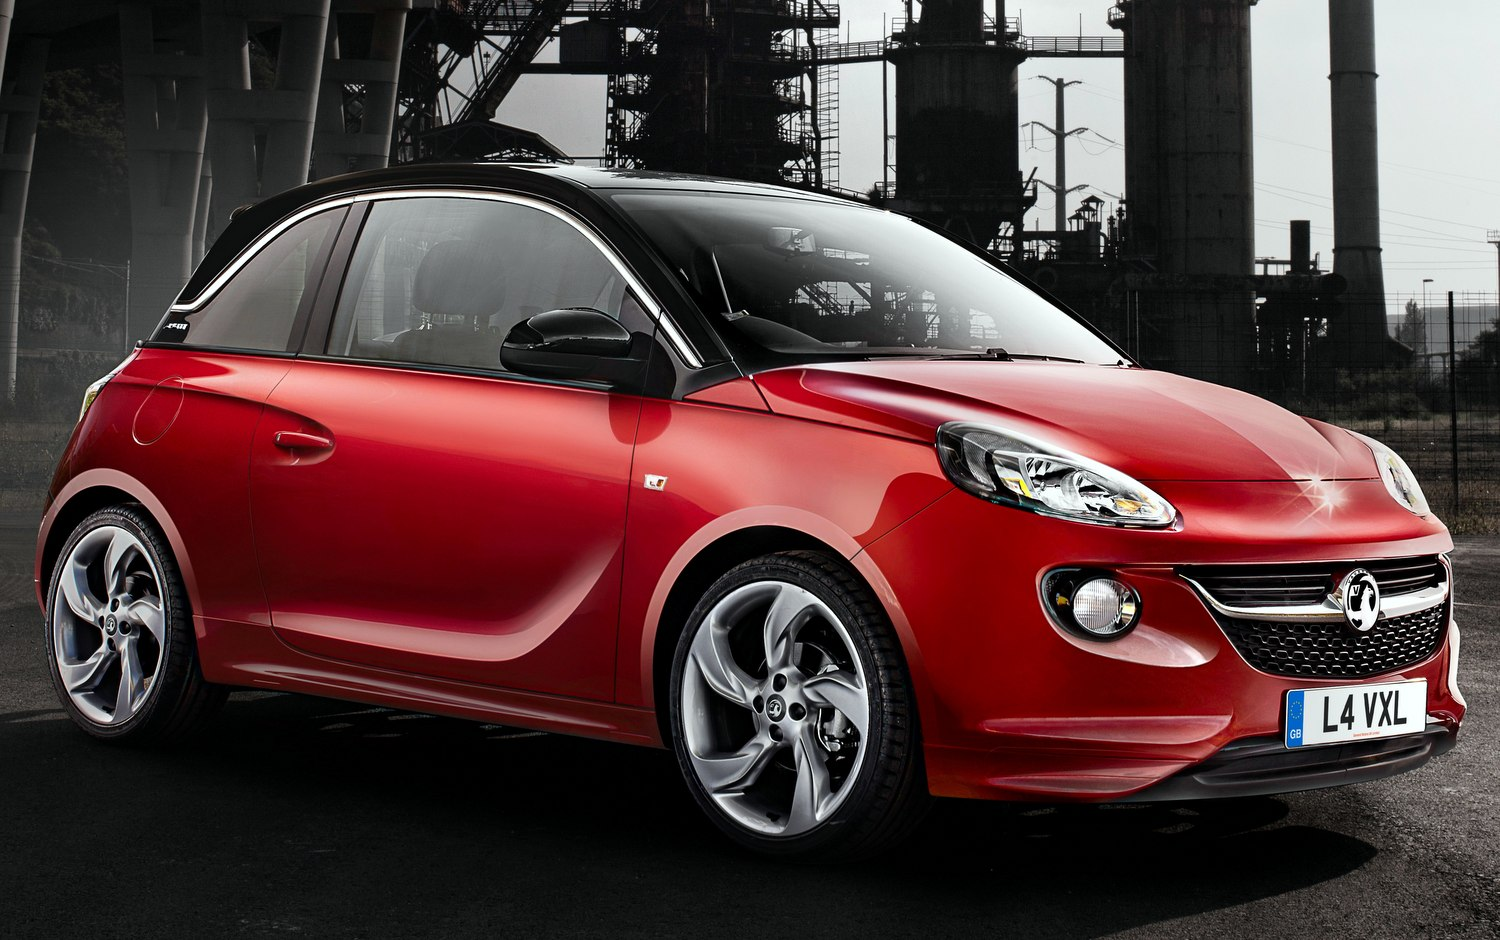 vauxhall unveils new adam city car the driven blog. Black Bedroom Furniture Sets. Home Design Ideas